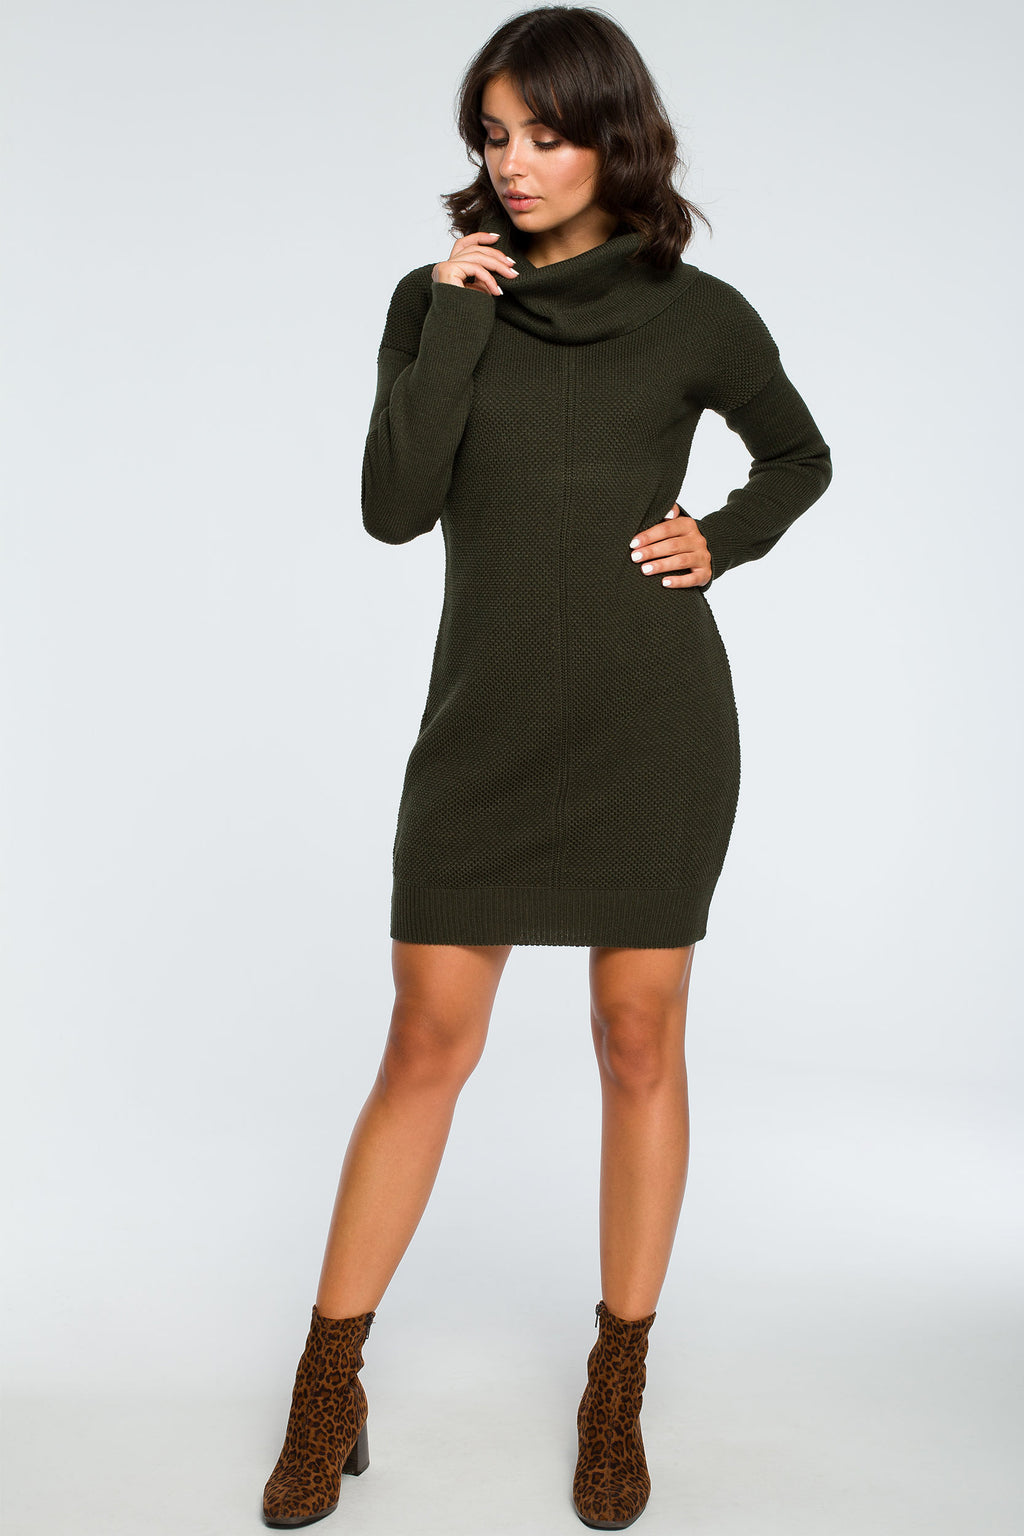 Khaki High Collar Knit Dress - So Chic Boutique